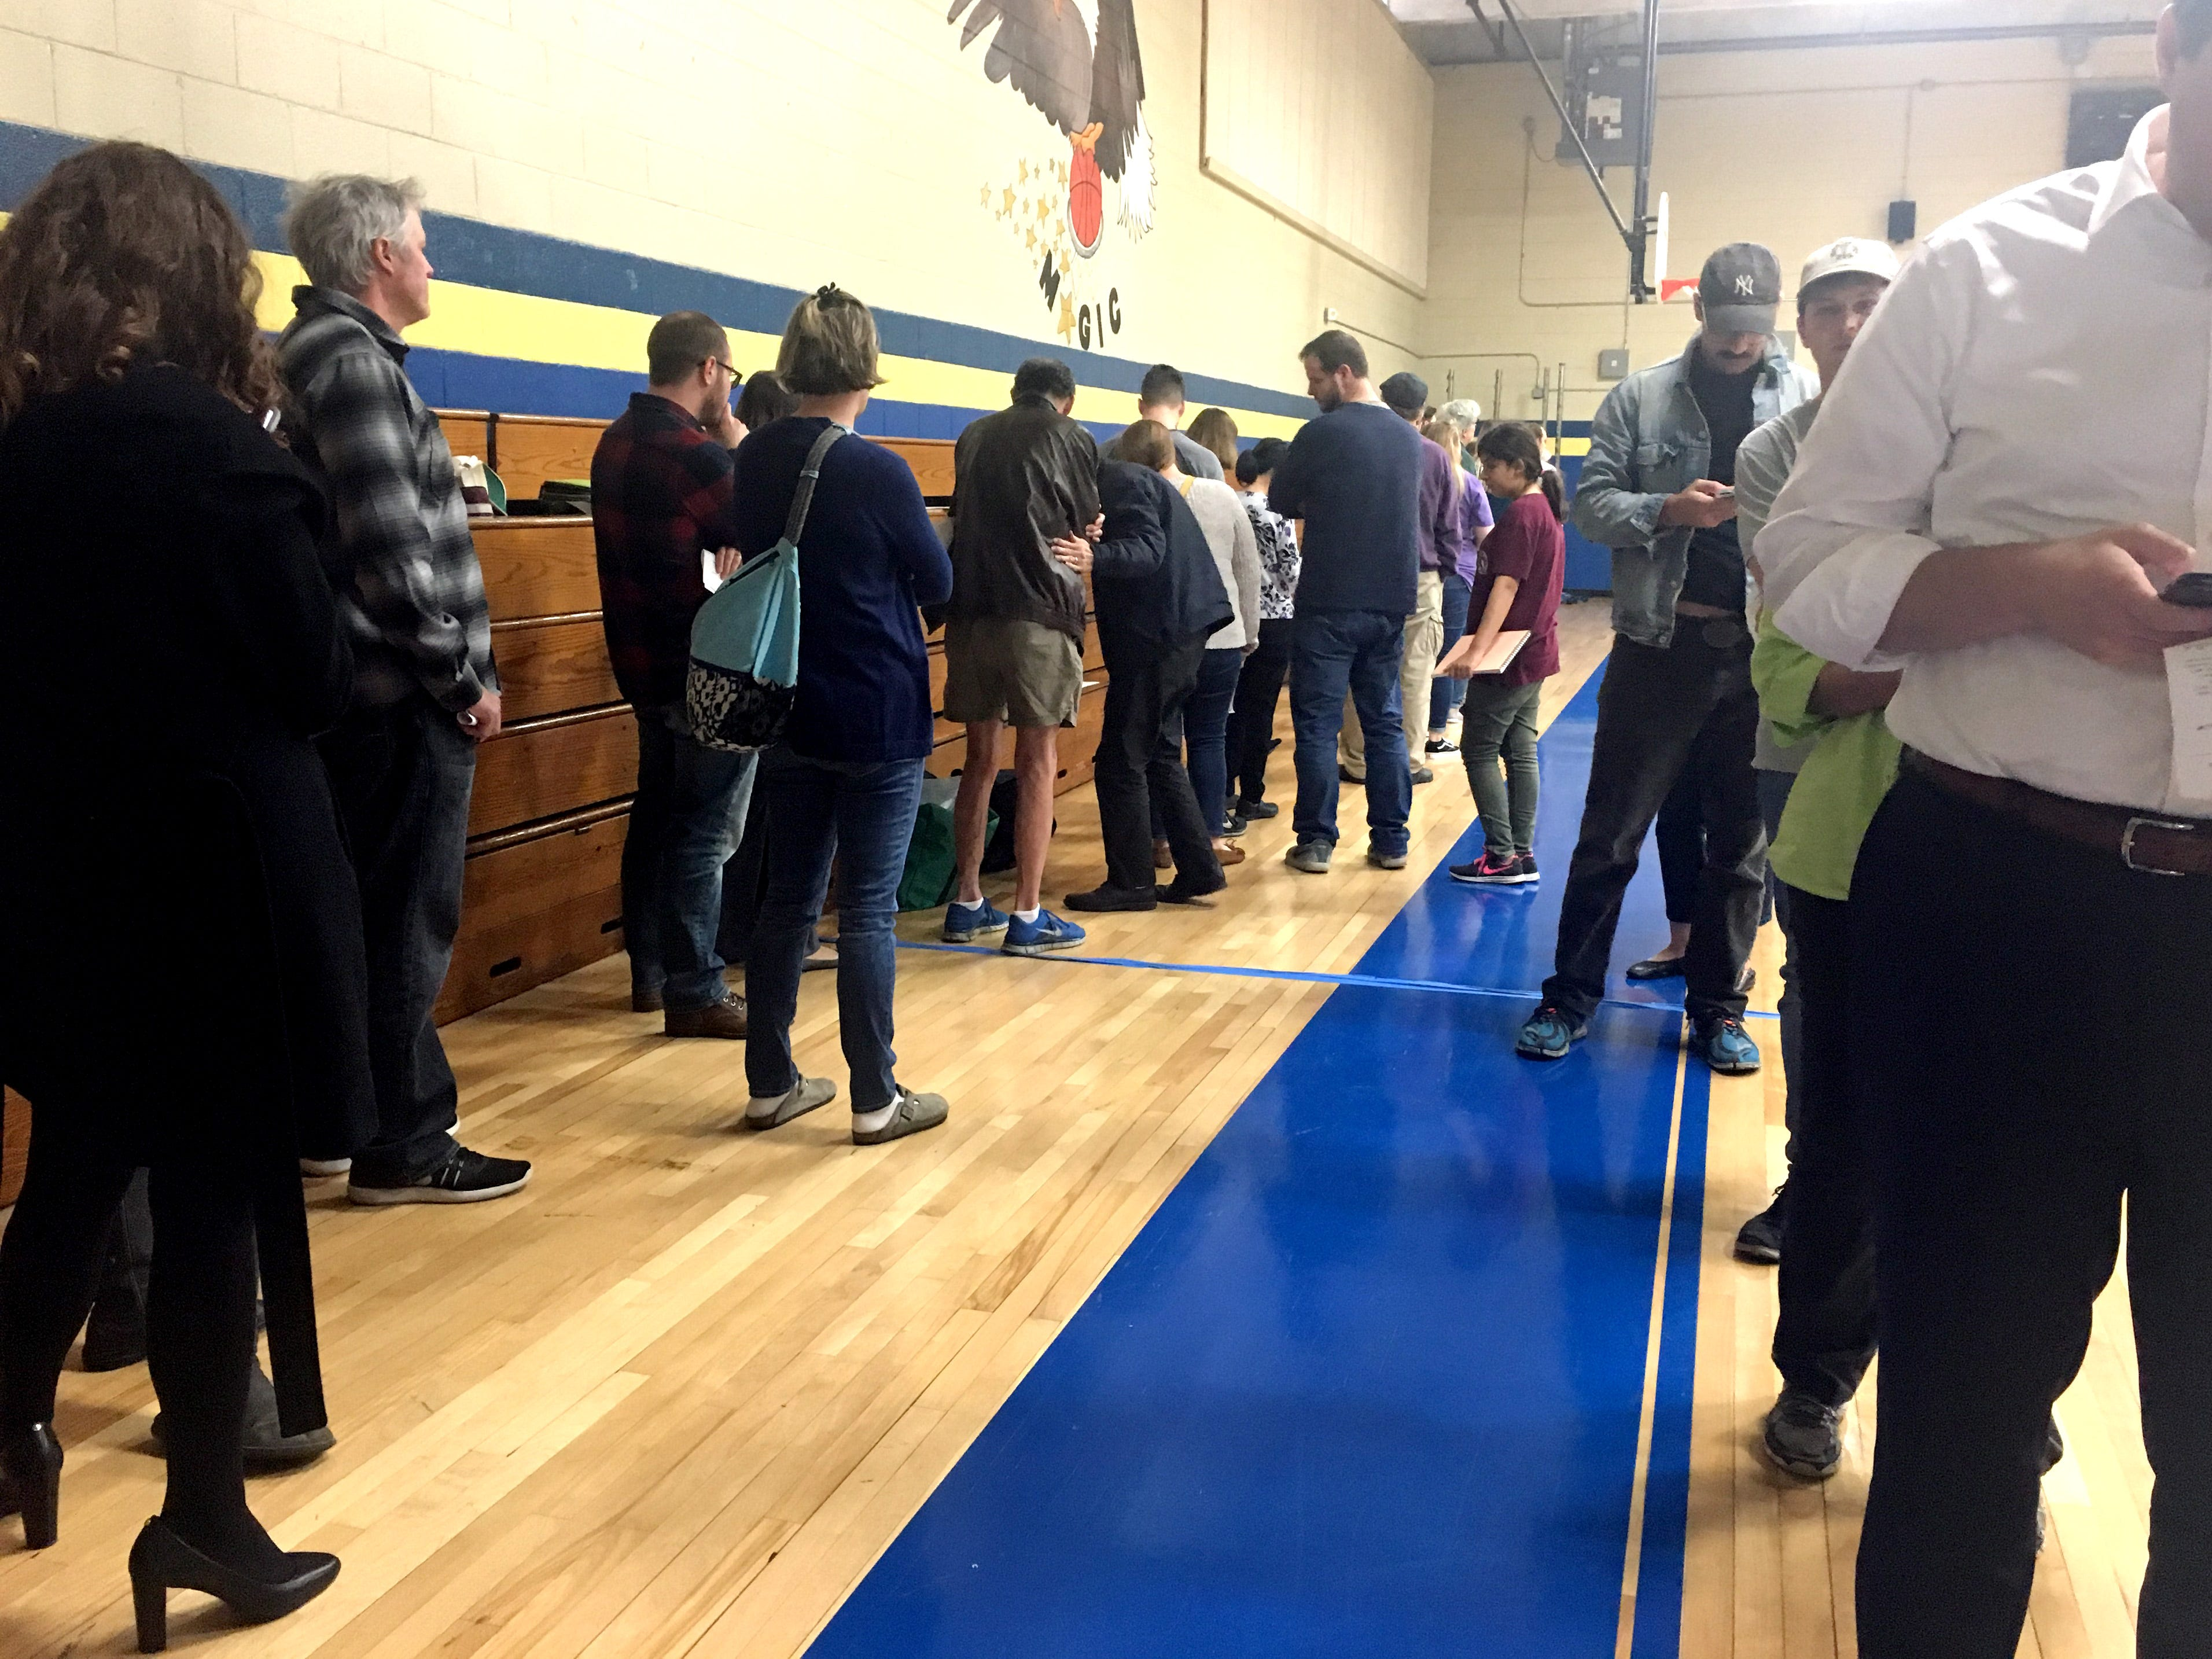 The scene at Eakin Elementary School around noon where two precincts vote Tuesday, Nov. 6, 2018.